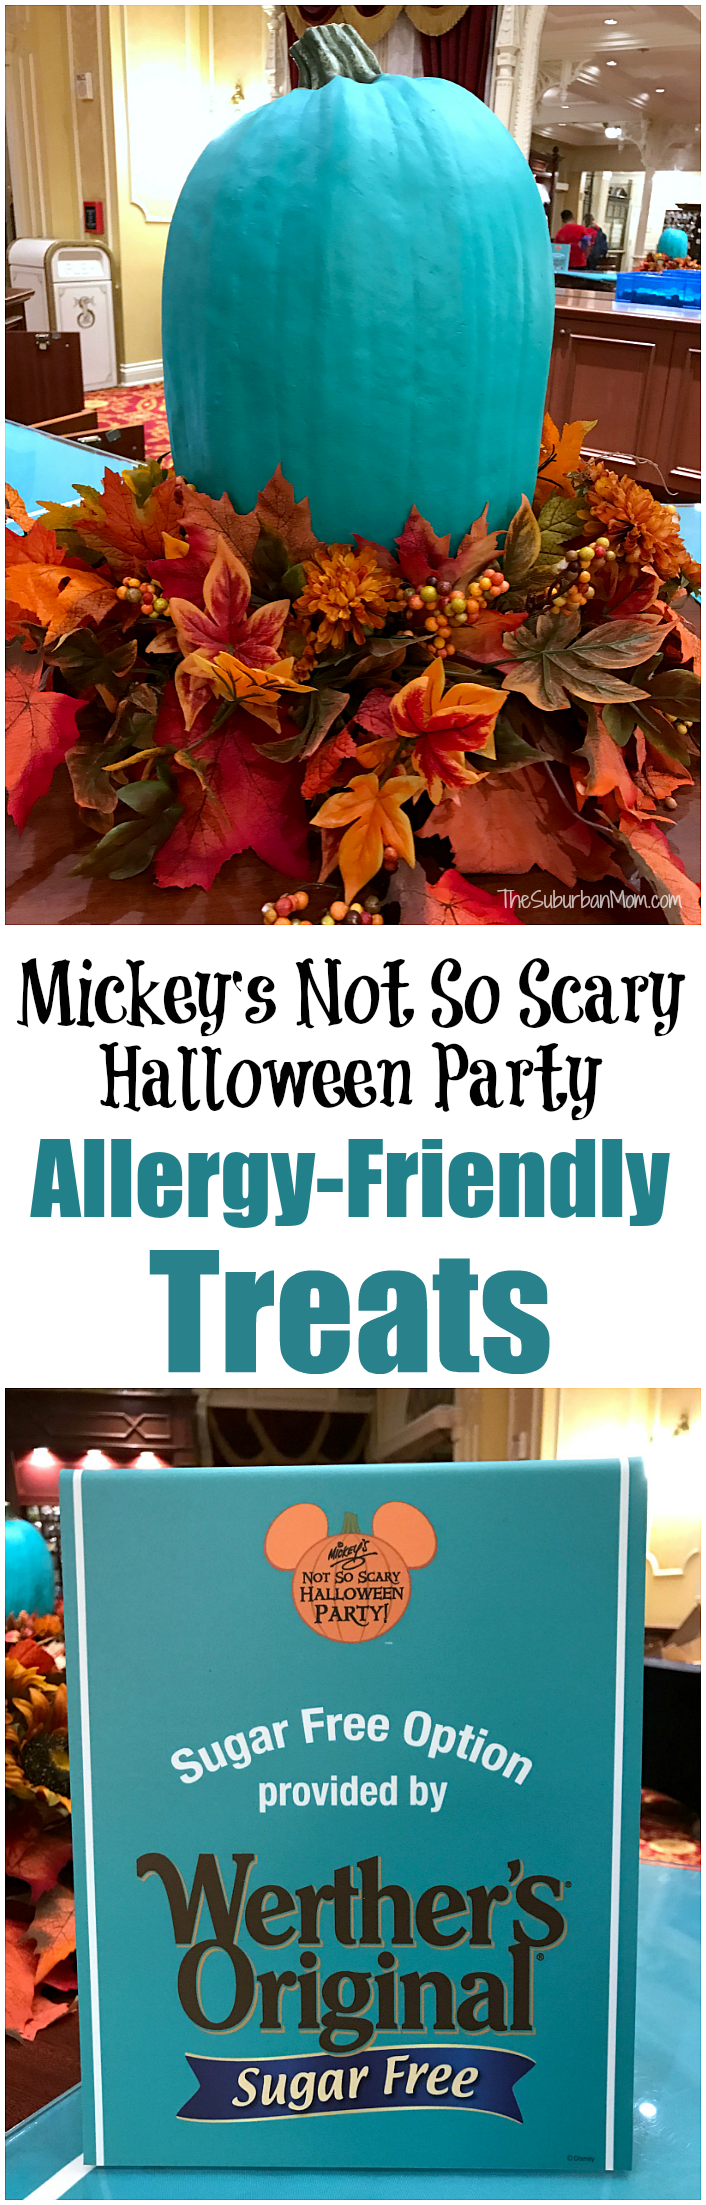 Allergy Friendly Treats At Mickey's Not So Scary Halloween Party